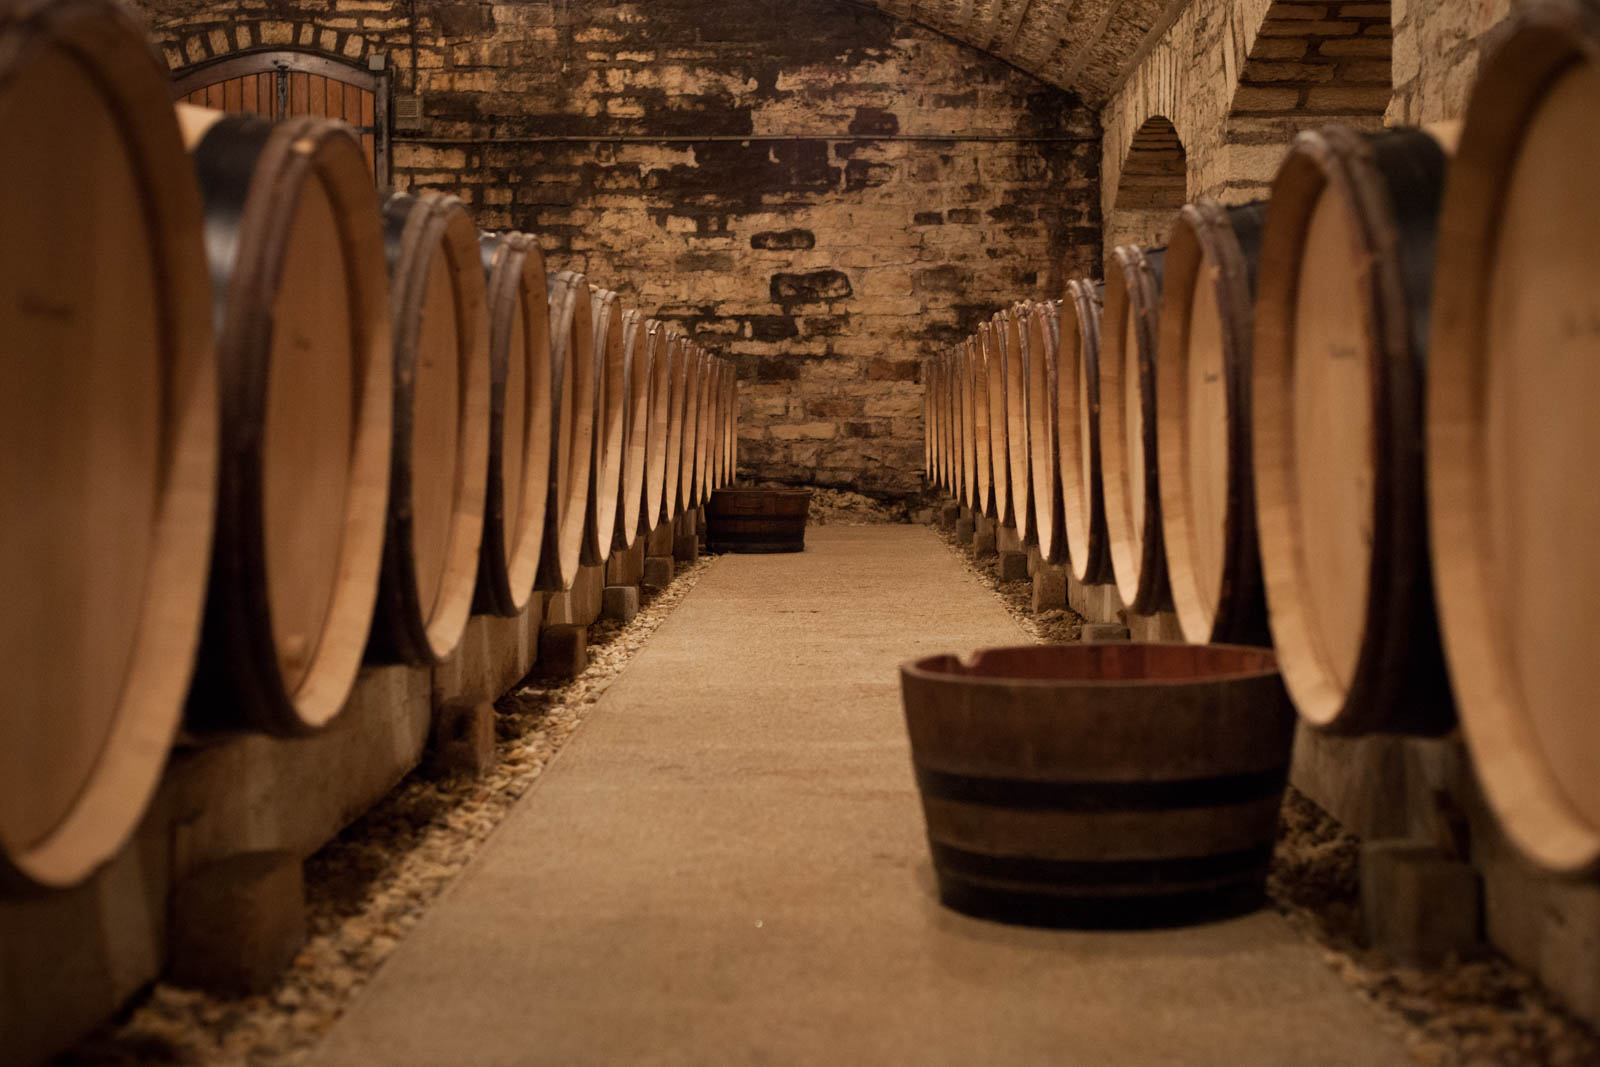 Unfathomable riches lie within these barrels: the 2016 vintage of Echézeaux, Grands Echézeaux and Corton. In typical vintages, the barrels would be stacked in twos, but not with 2016. Frost and hail kept yields very small.©Kevin Day / Opening a Bottle